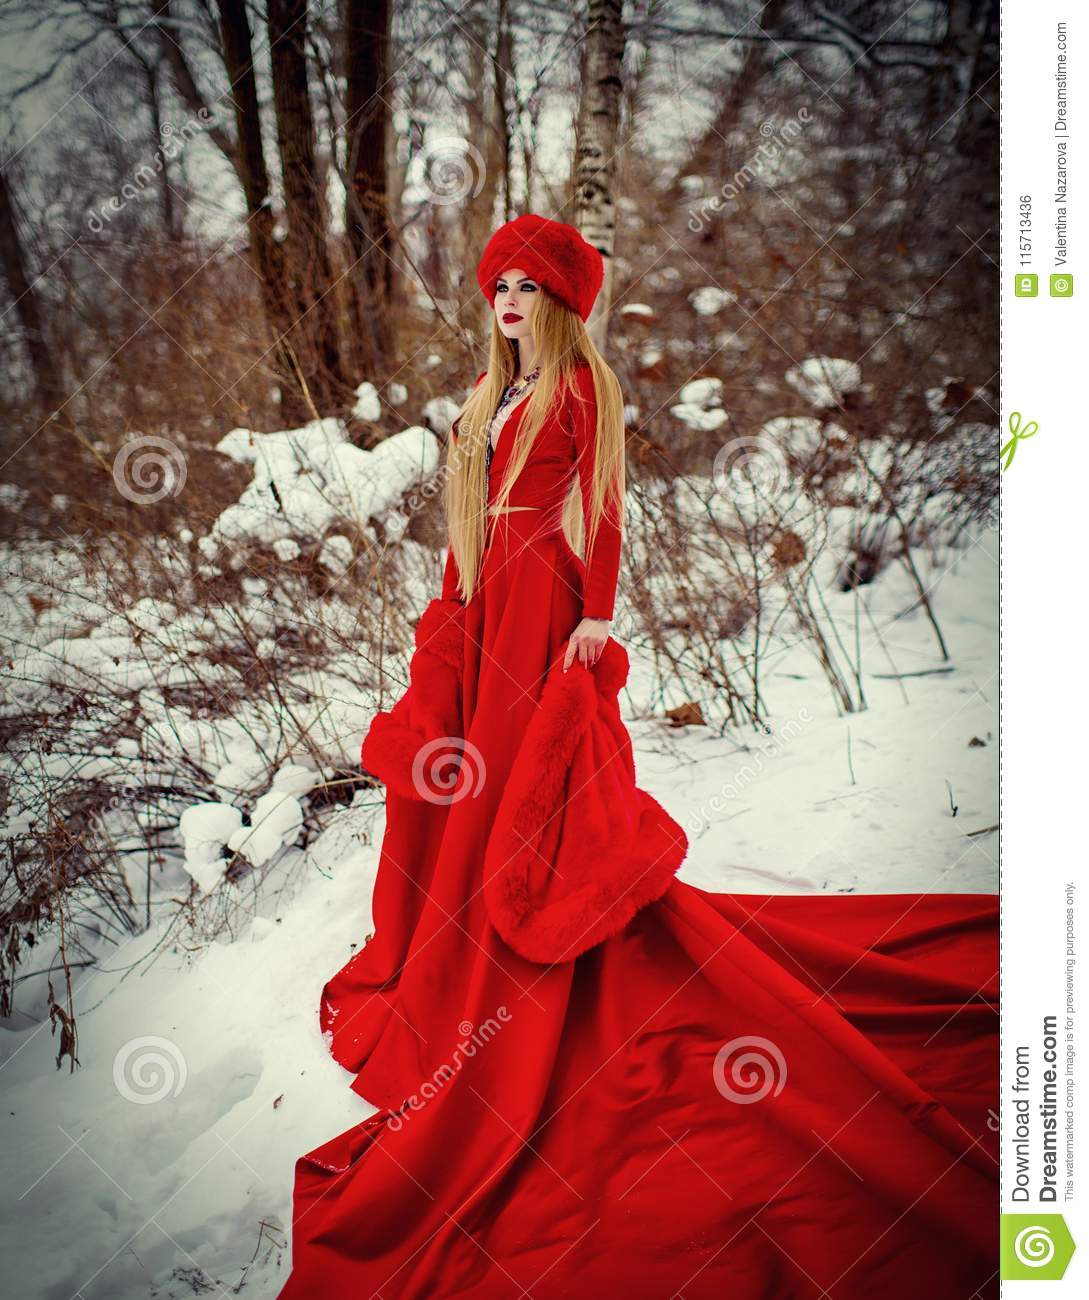 55589beaf Girl In Red Dress In Winter Forest Stock Photo - Image of blonde ...